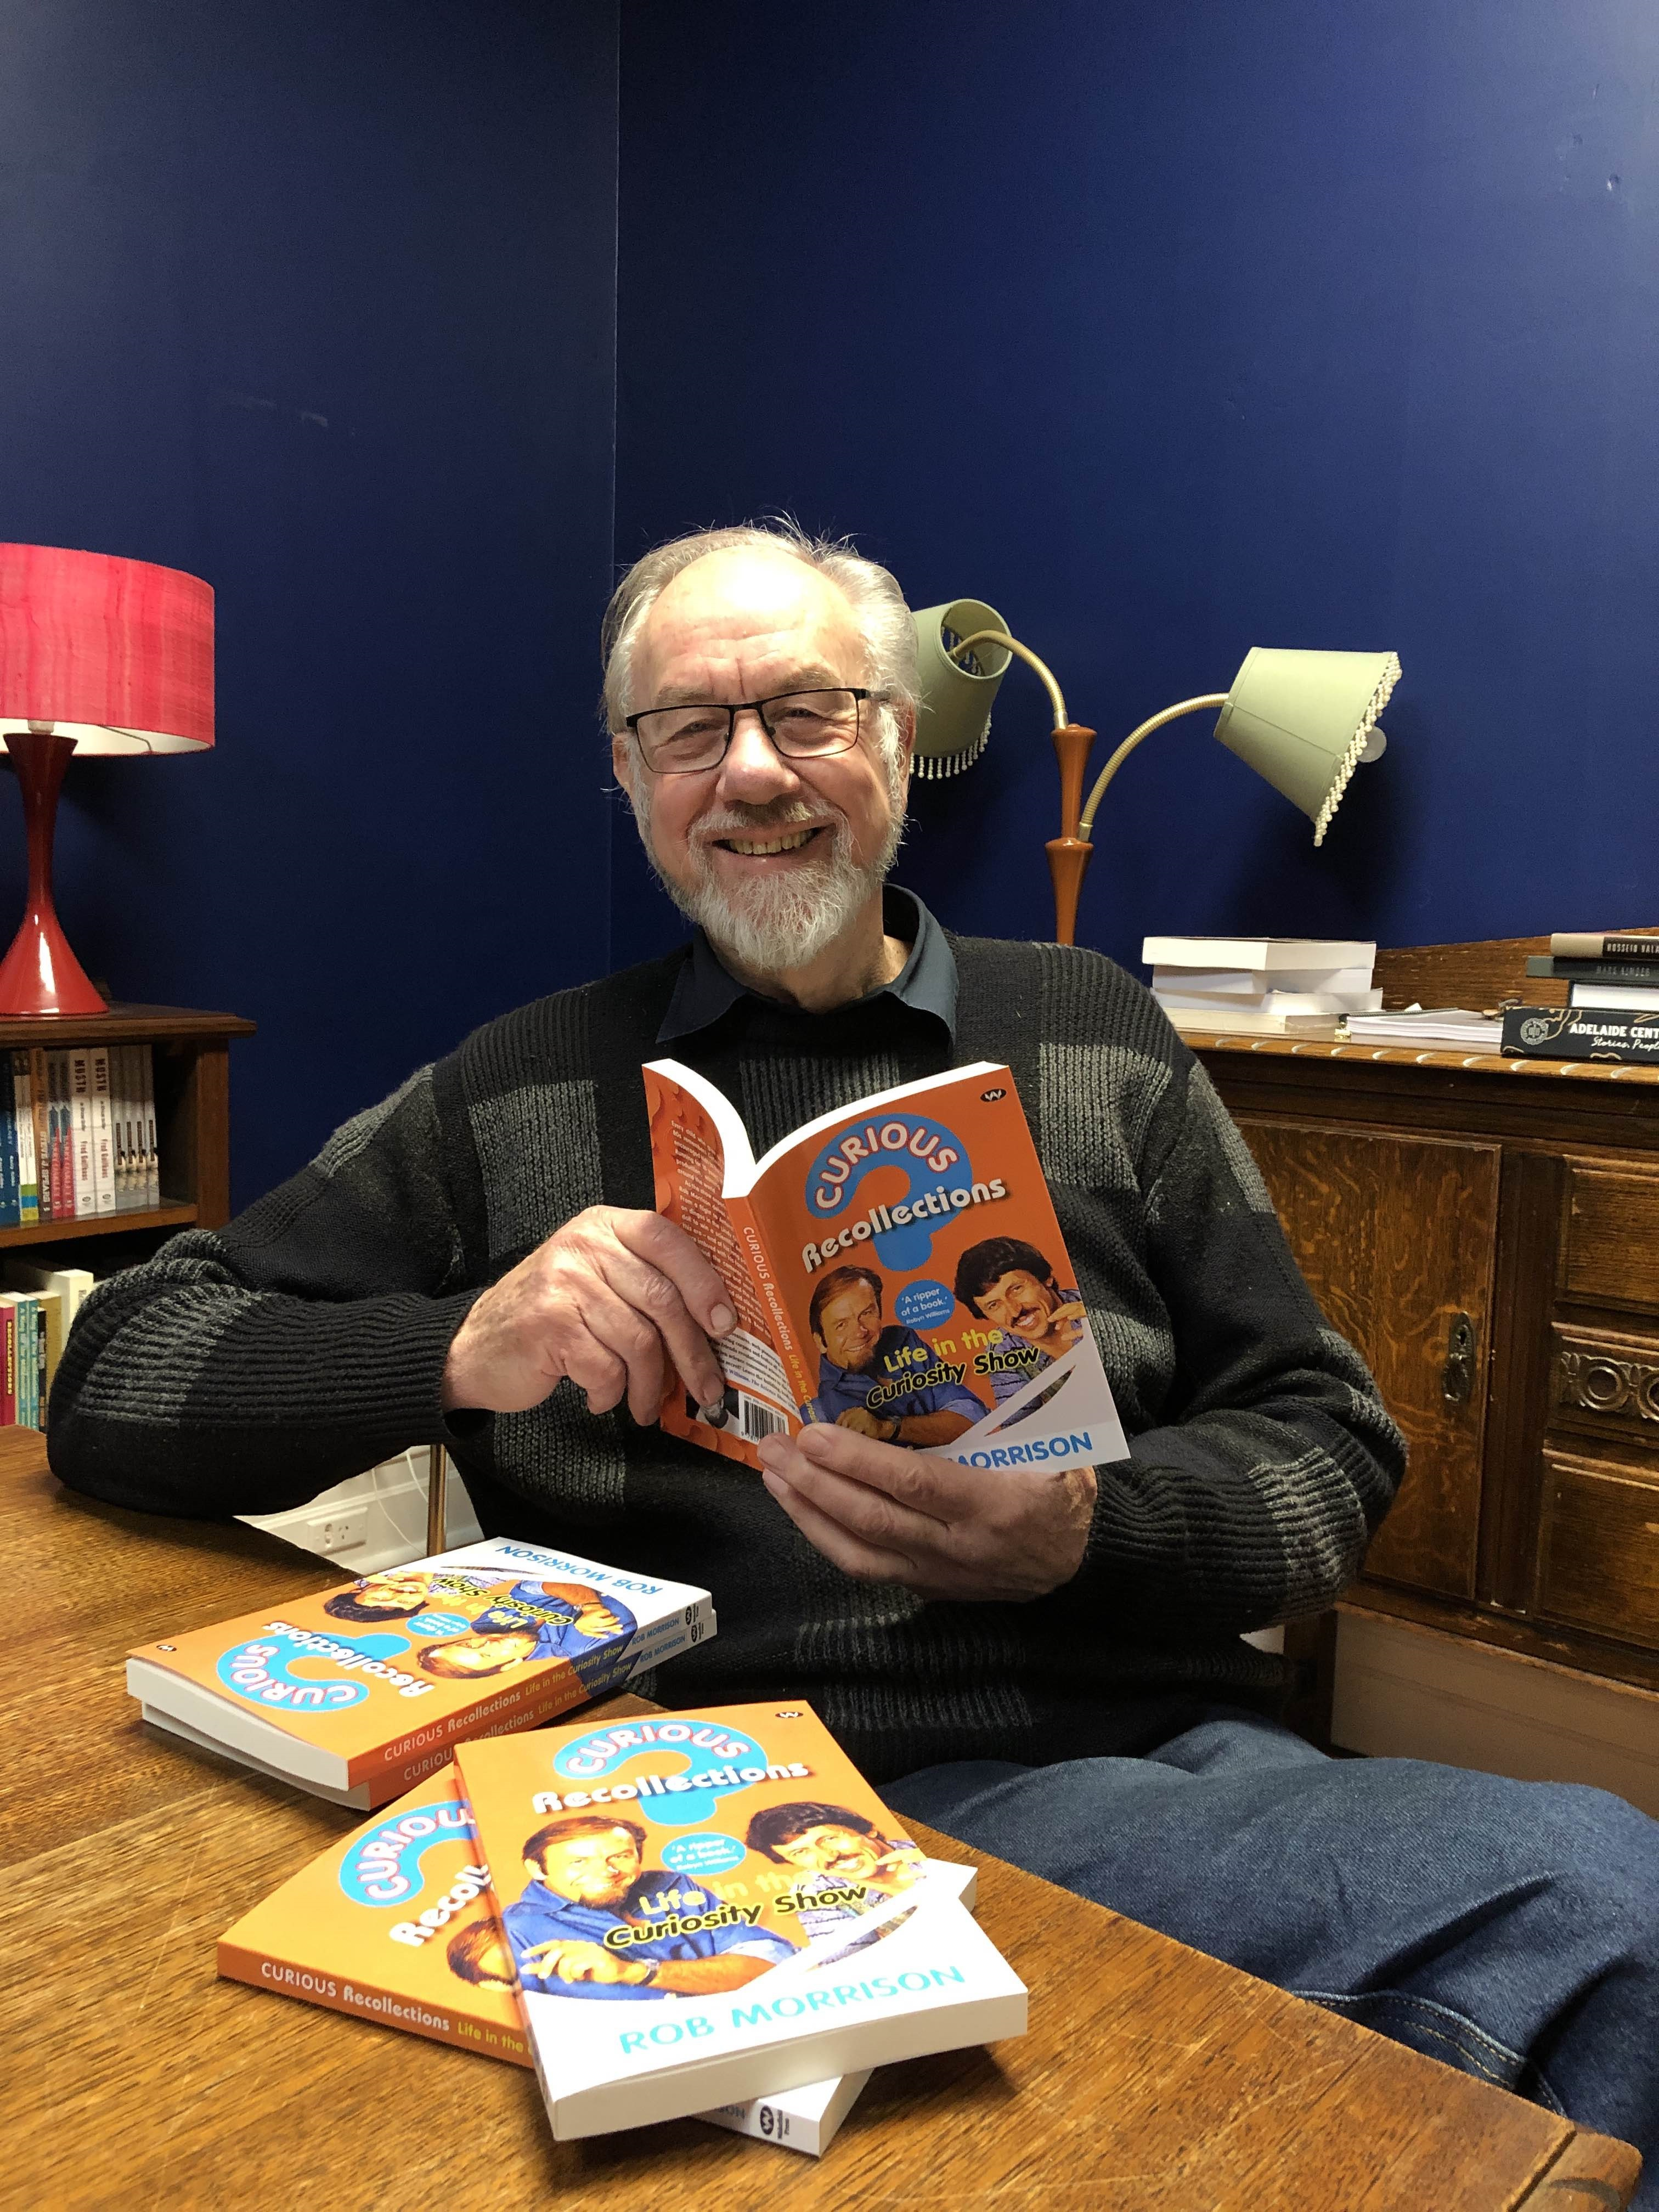 Photograph of Rob Morrison with some books